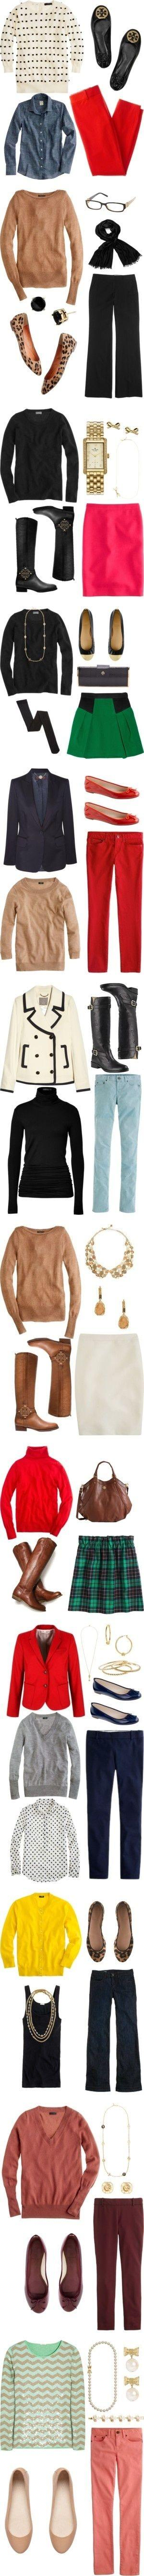 Outfit ideas by LiveLoveLaughMyLife